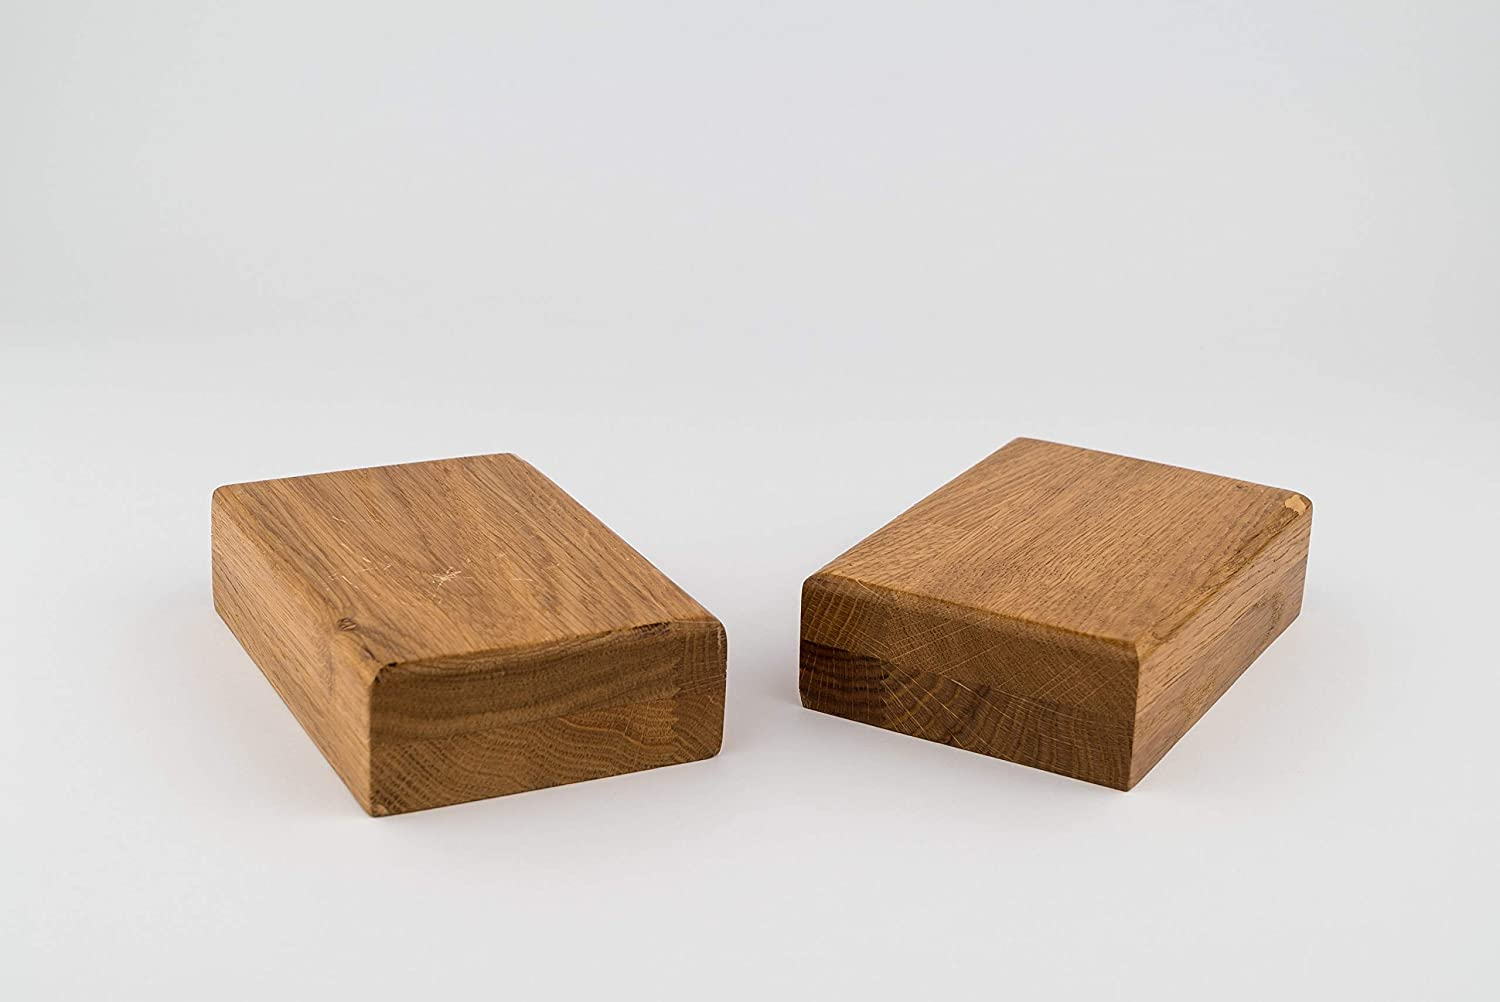 Handstand Blocks for yoga and fitness set of 2 blooks